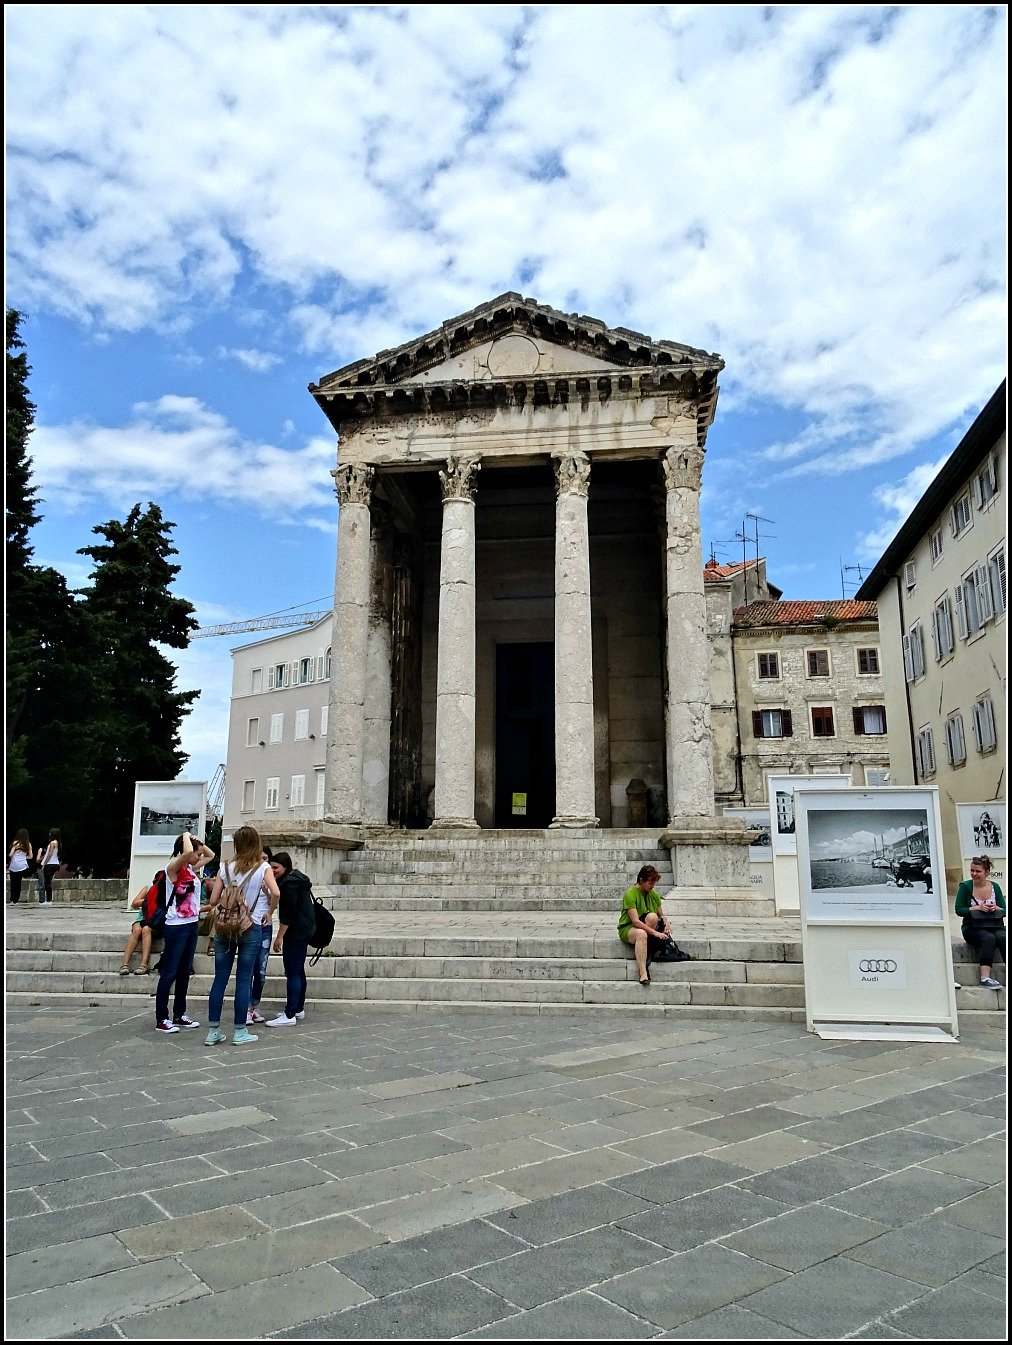 Pula Temple of Augustov the only Roman building left in the Town Square of Pula